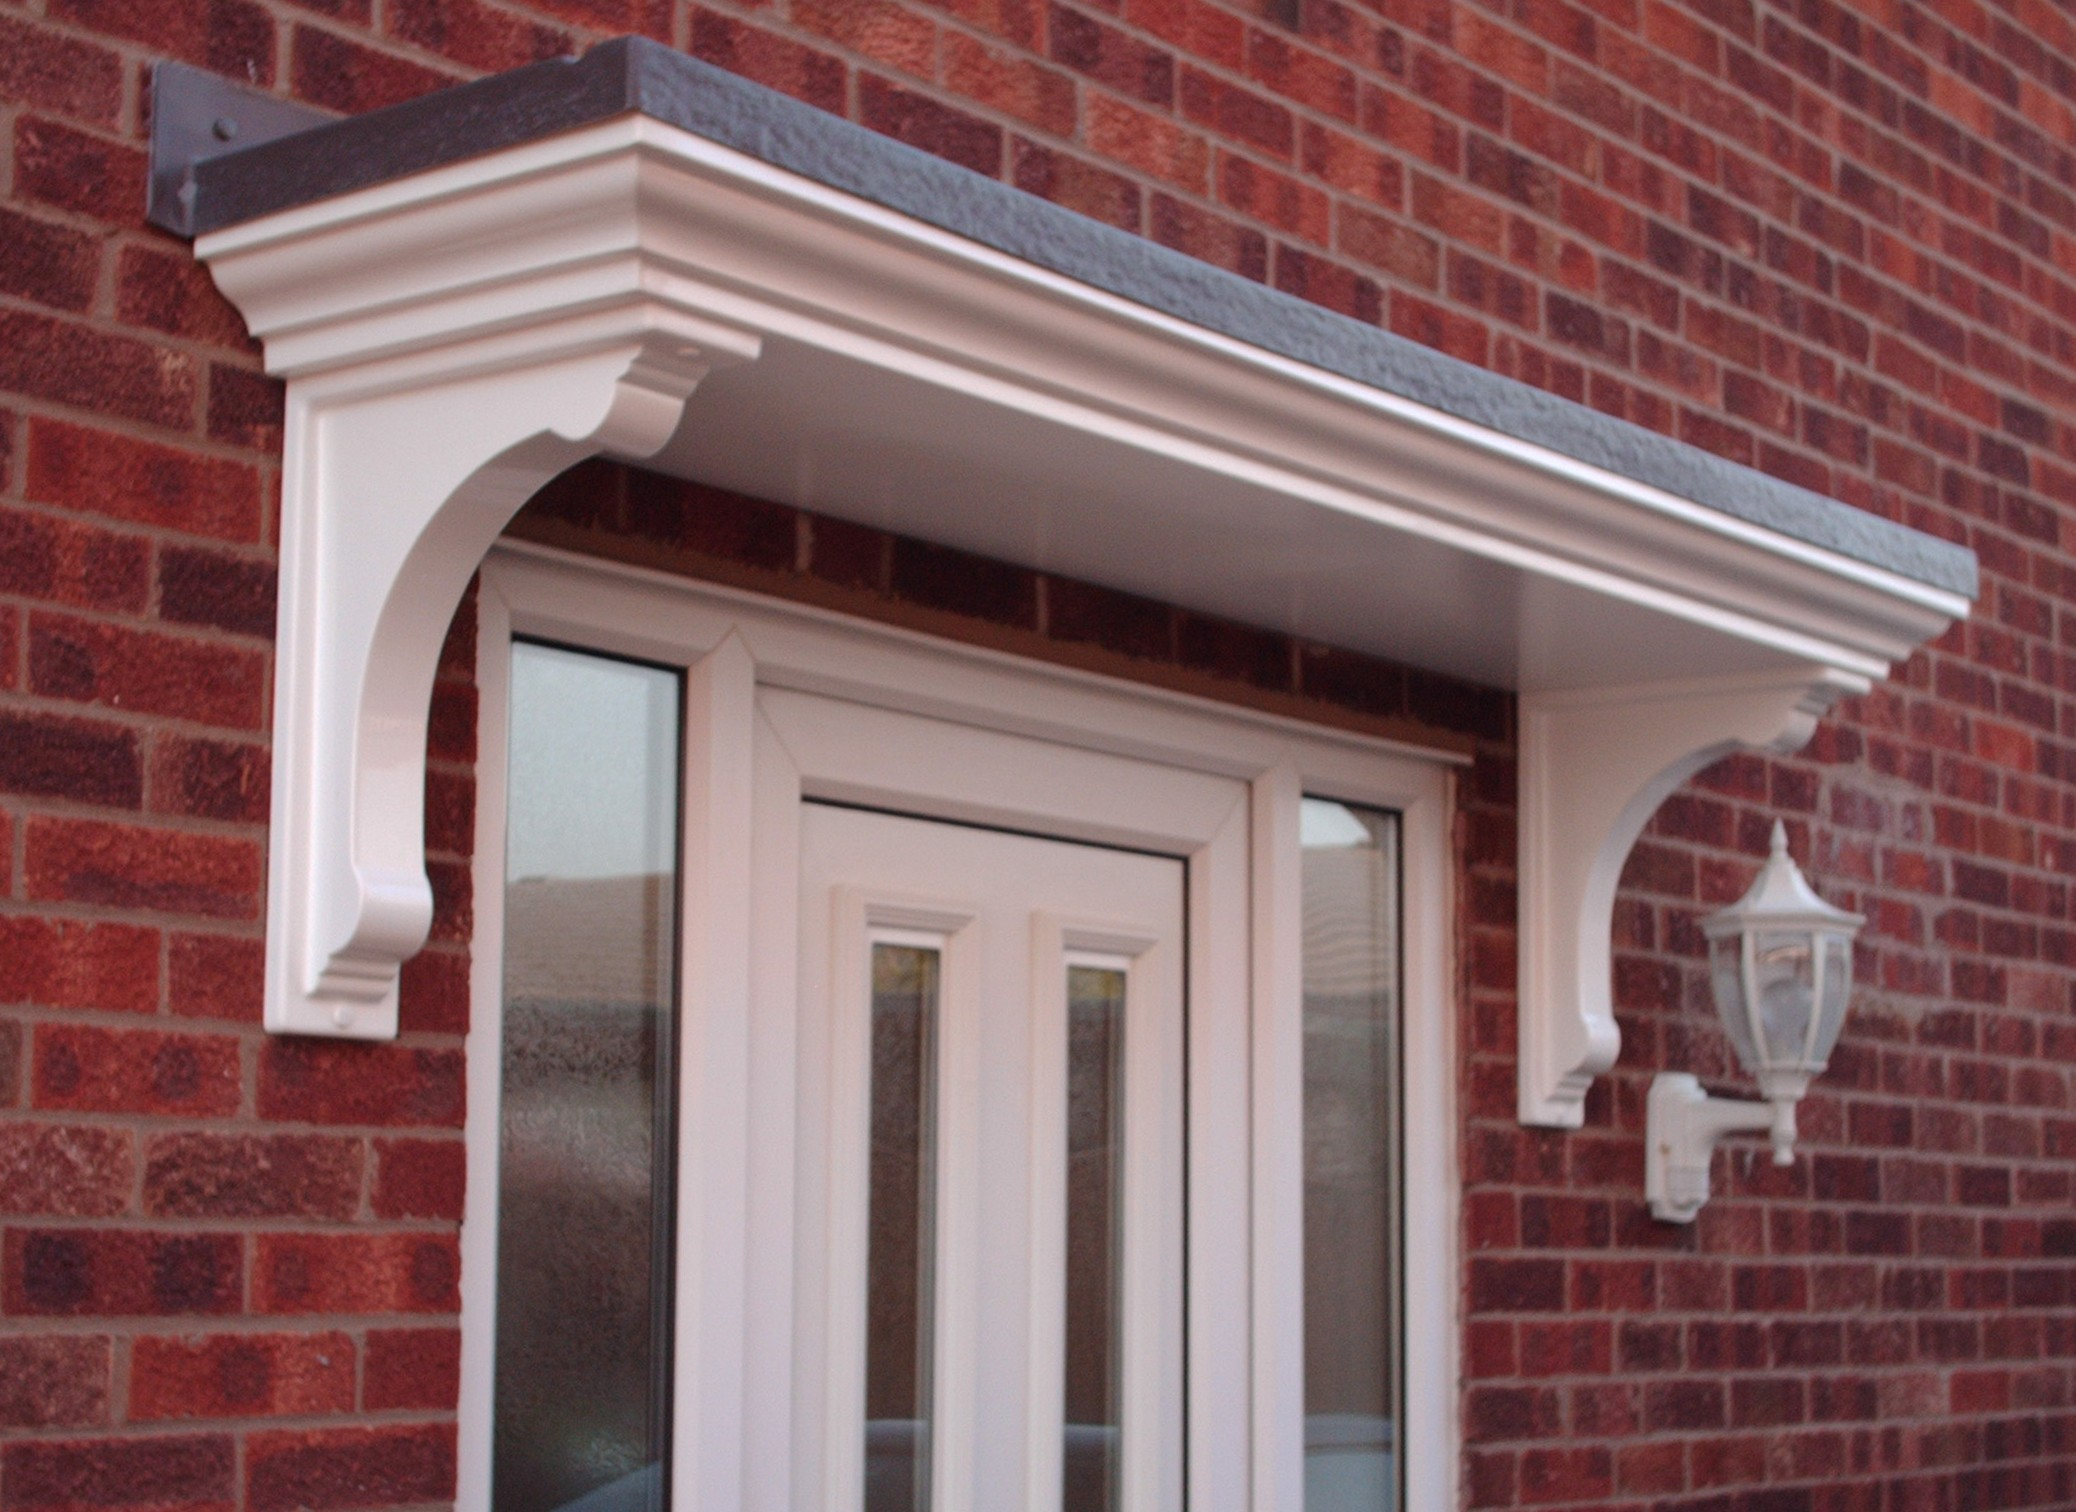 Decorative Awnings For Homes